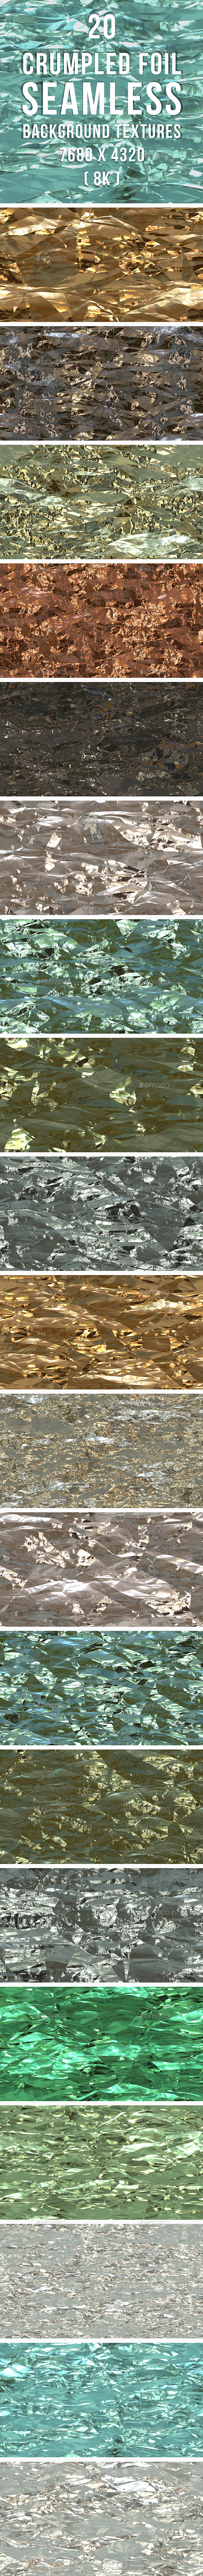 GraphicRiver 20 Crumpled Foil Seamless Background Textures 20326435